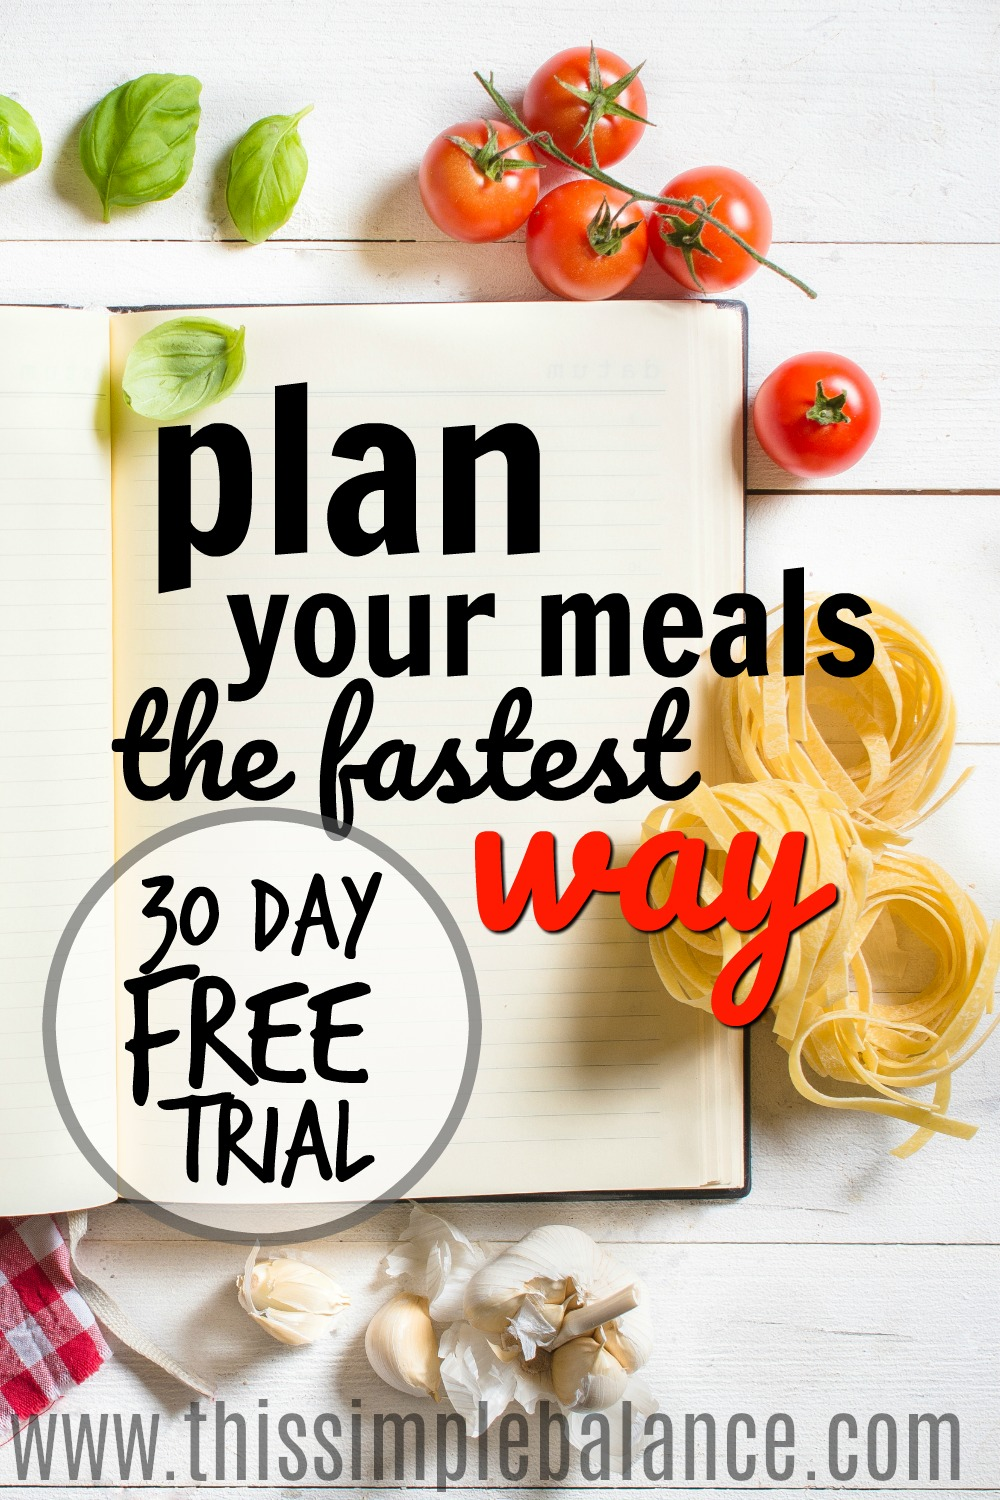 Do you dread meal planning? Does it take you forever to put together your weekly meal plan and shopping list? Check out this meal planning tool that will make meal planning so simple you might actually look forward to it!